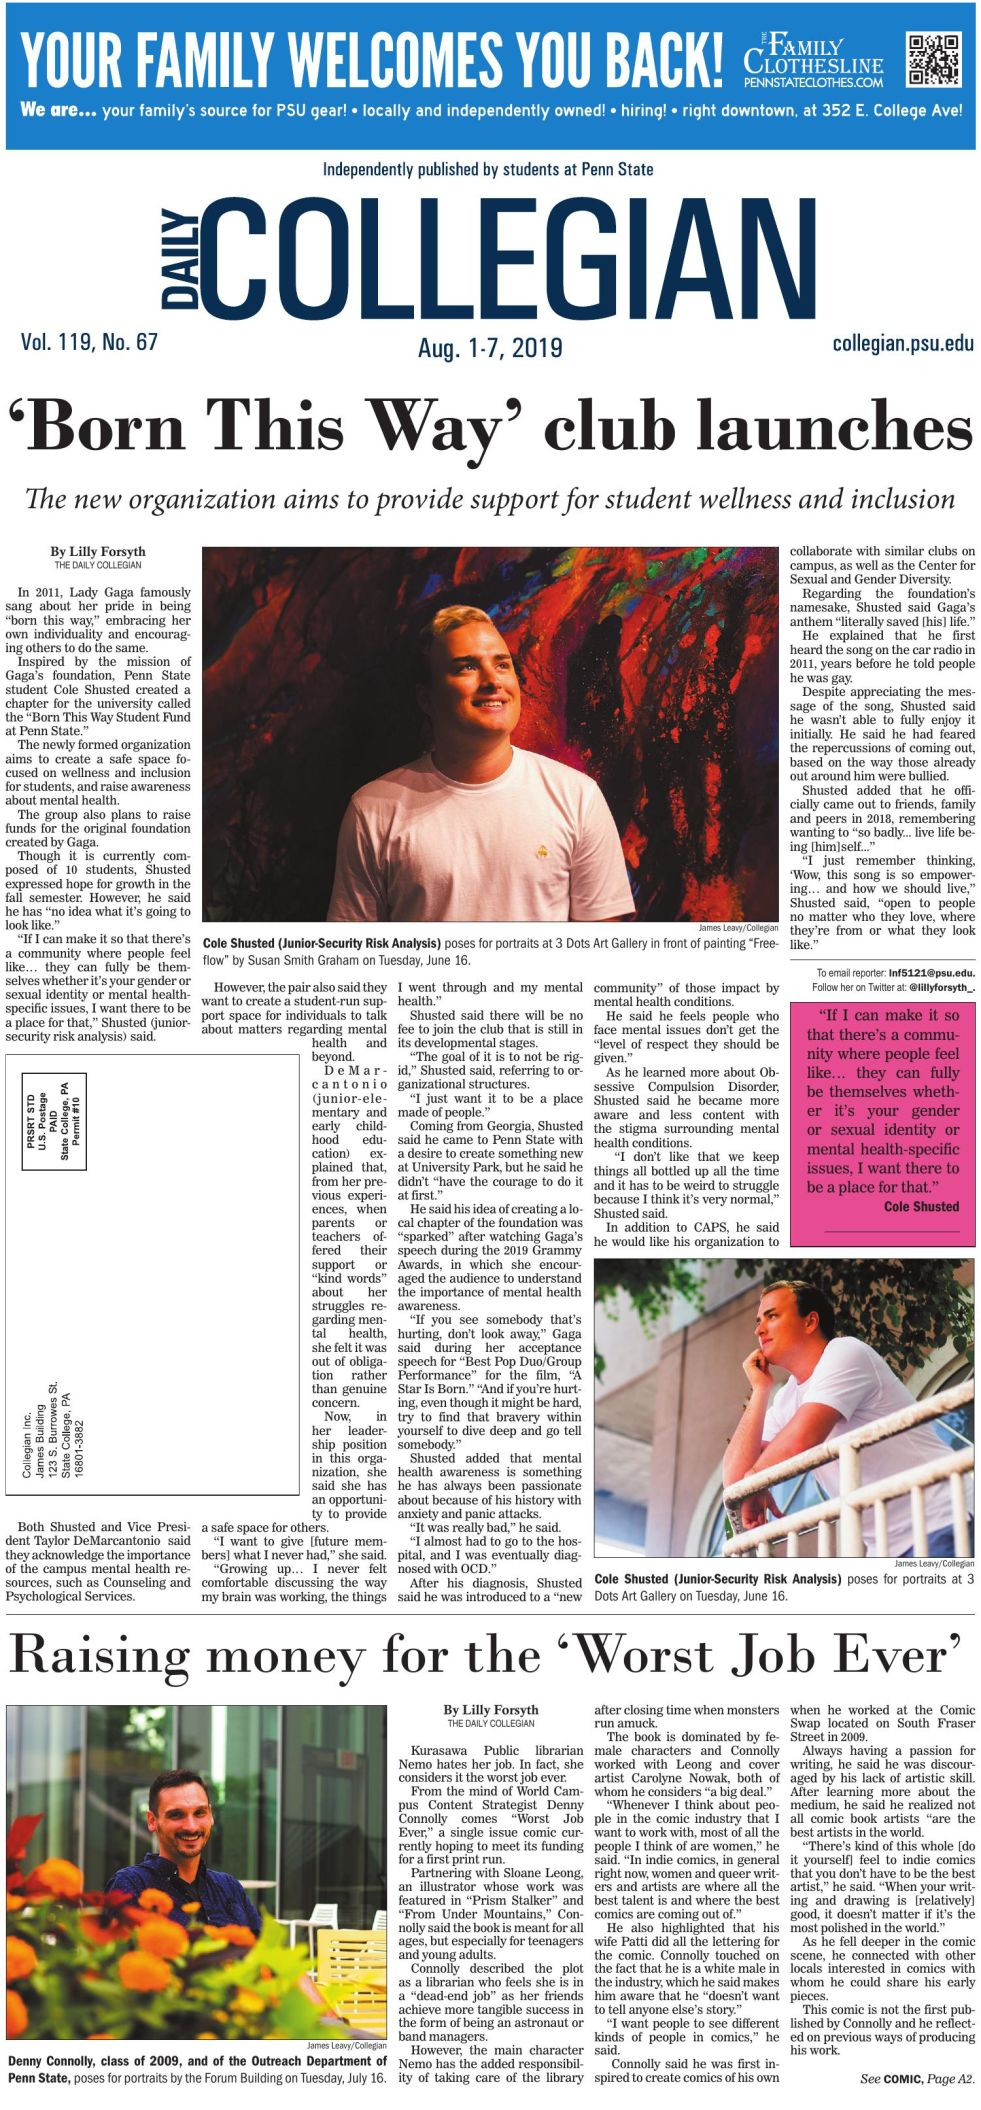 The Daily Collegian for Aug. 1, 2019